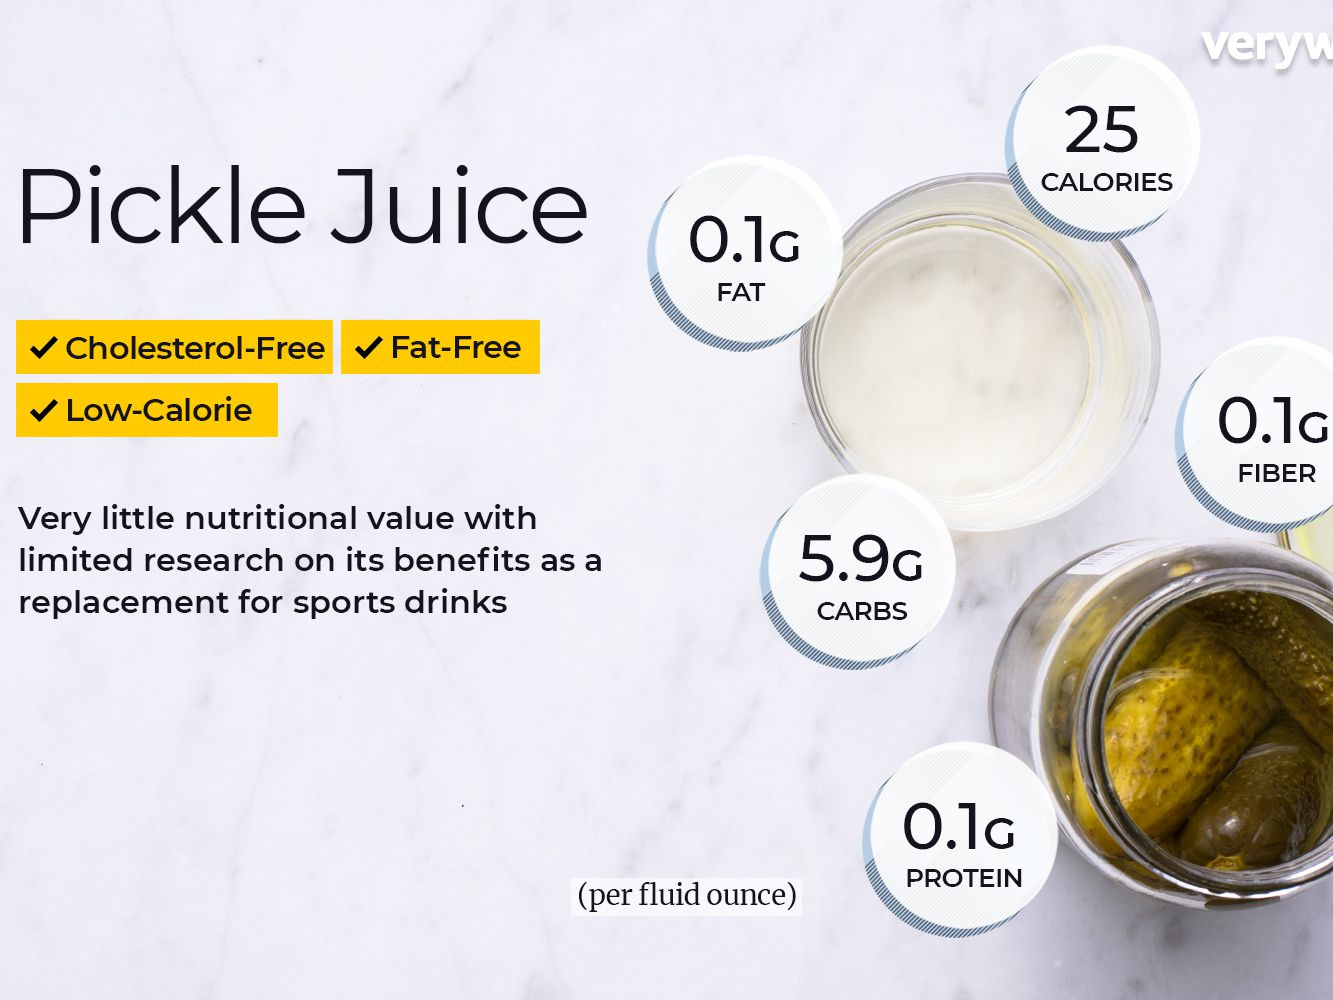 Pickle Juice Nutrition Facts and Health